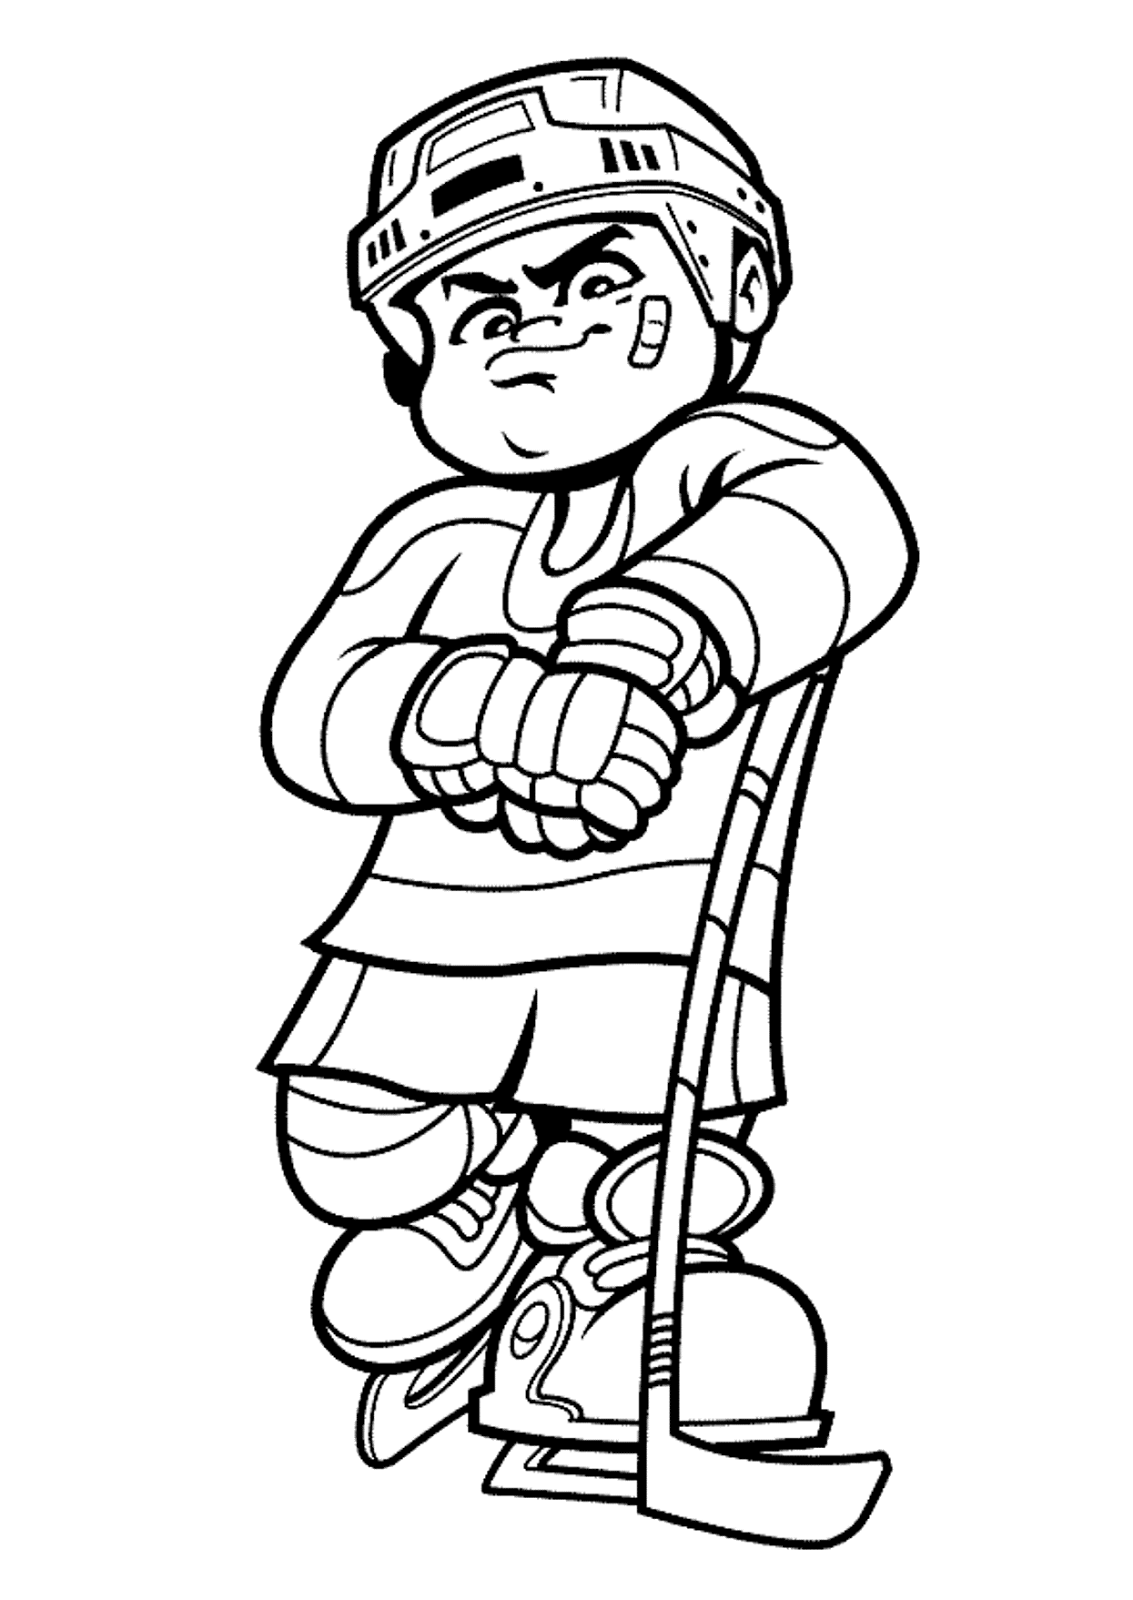 sport coloring pages types of sports coloring pages for kids hockey sports pages sport coloring